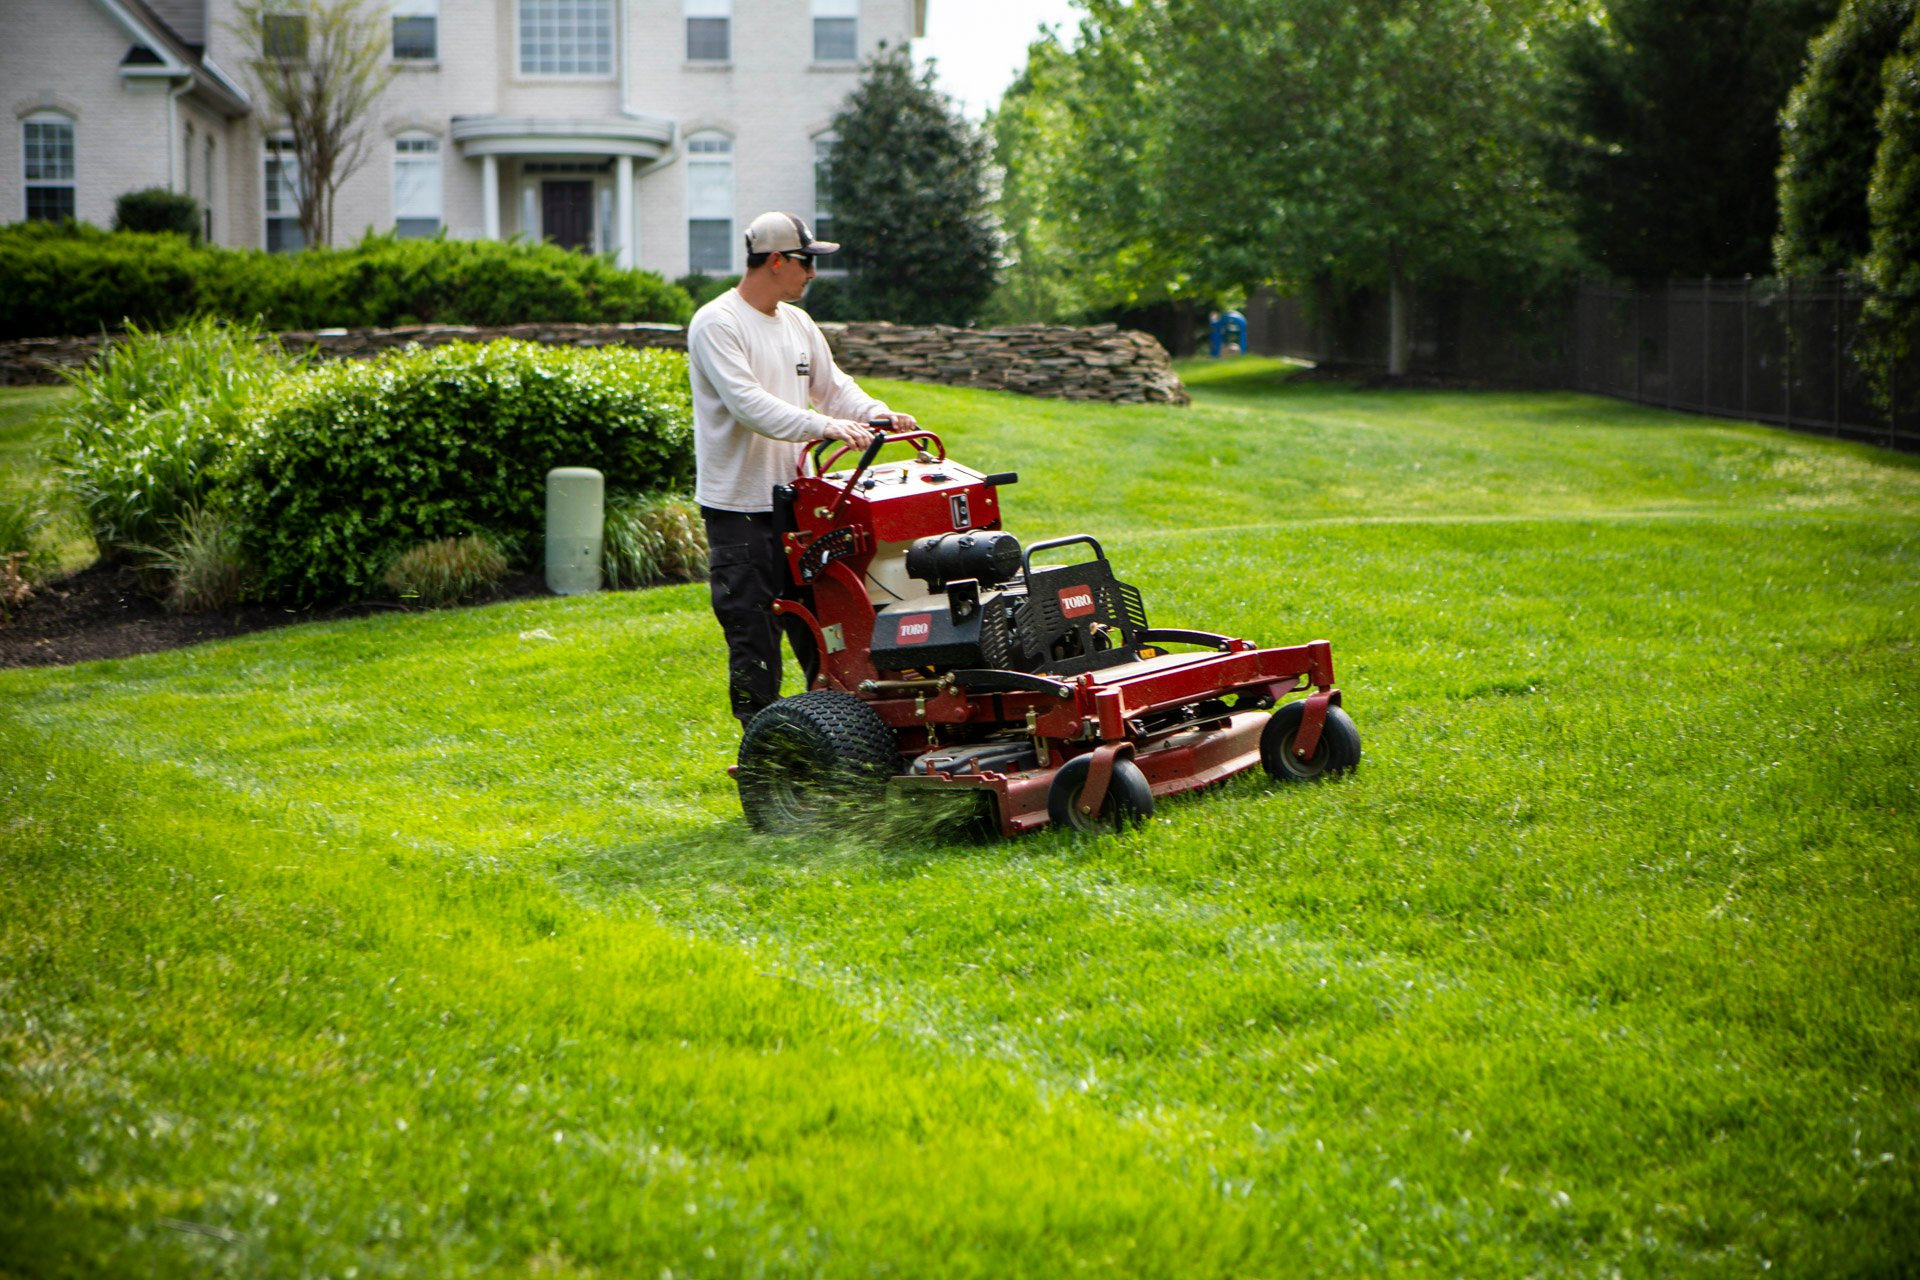 Kingstowne lawn technician mowing lawn